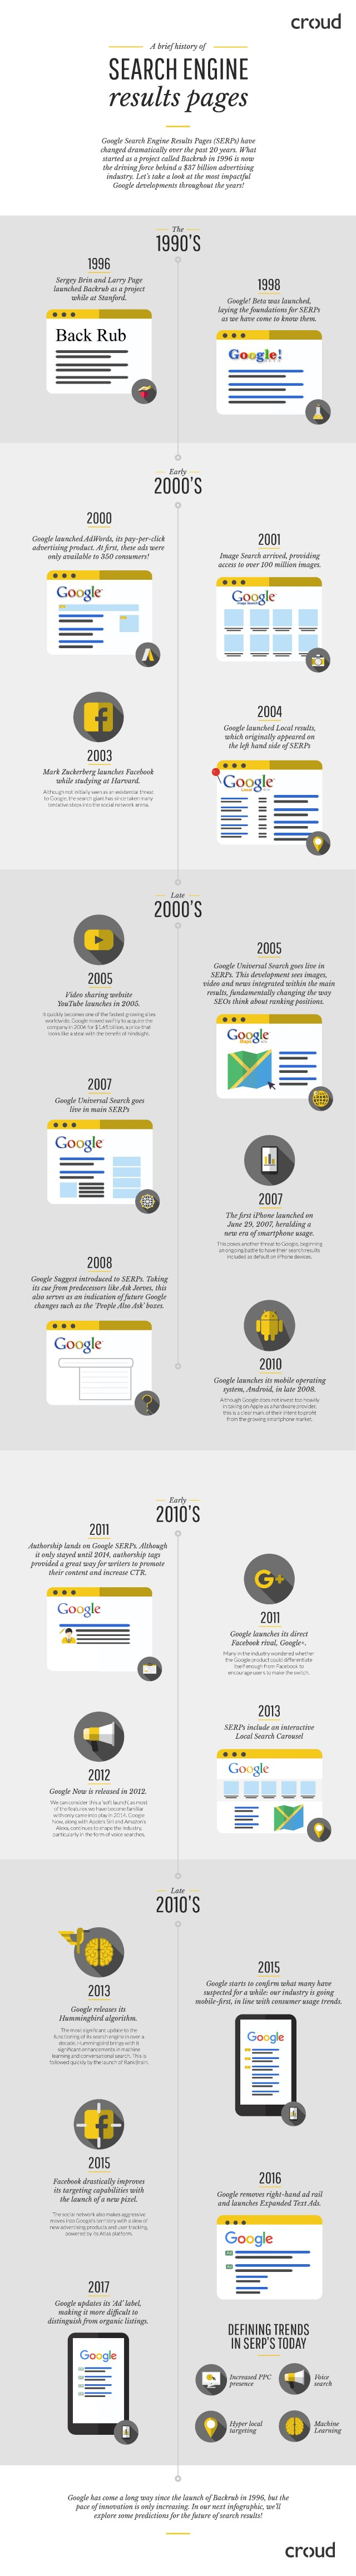 History-of-the-Google-SERP-SEW